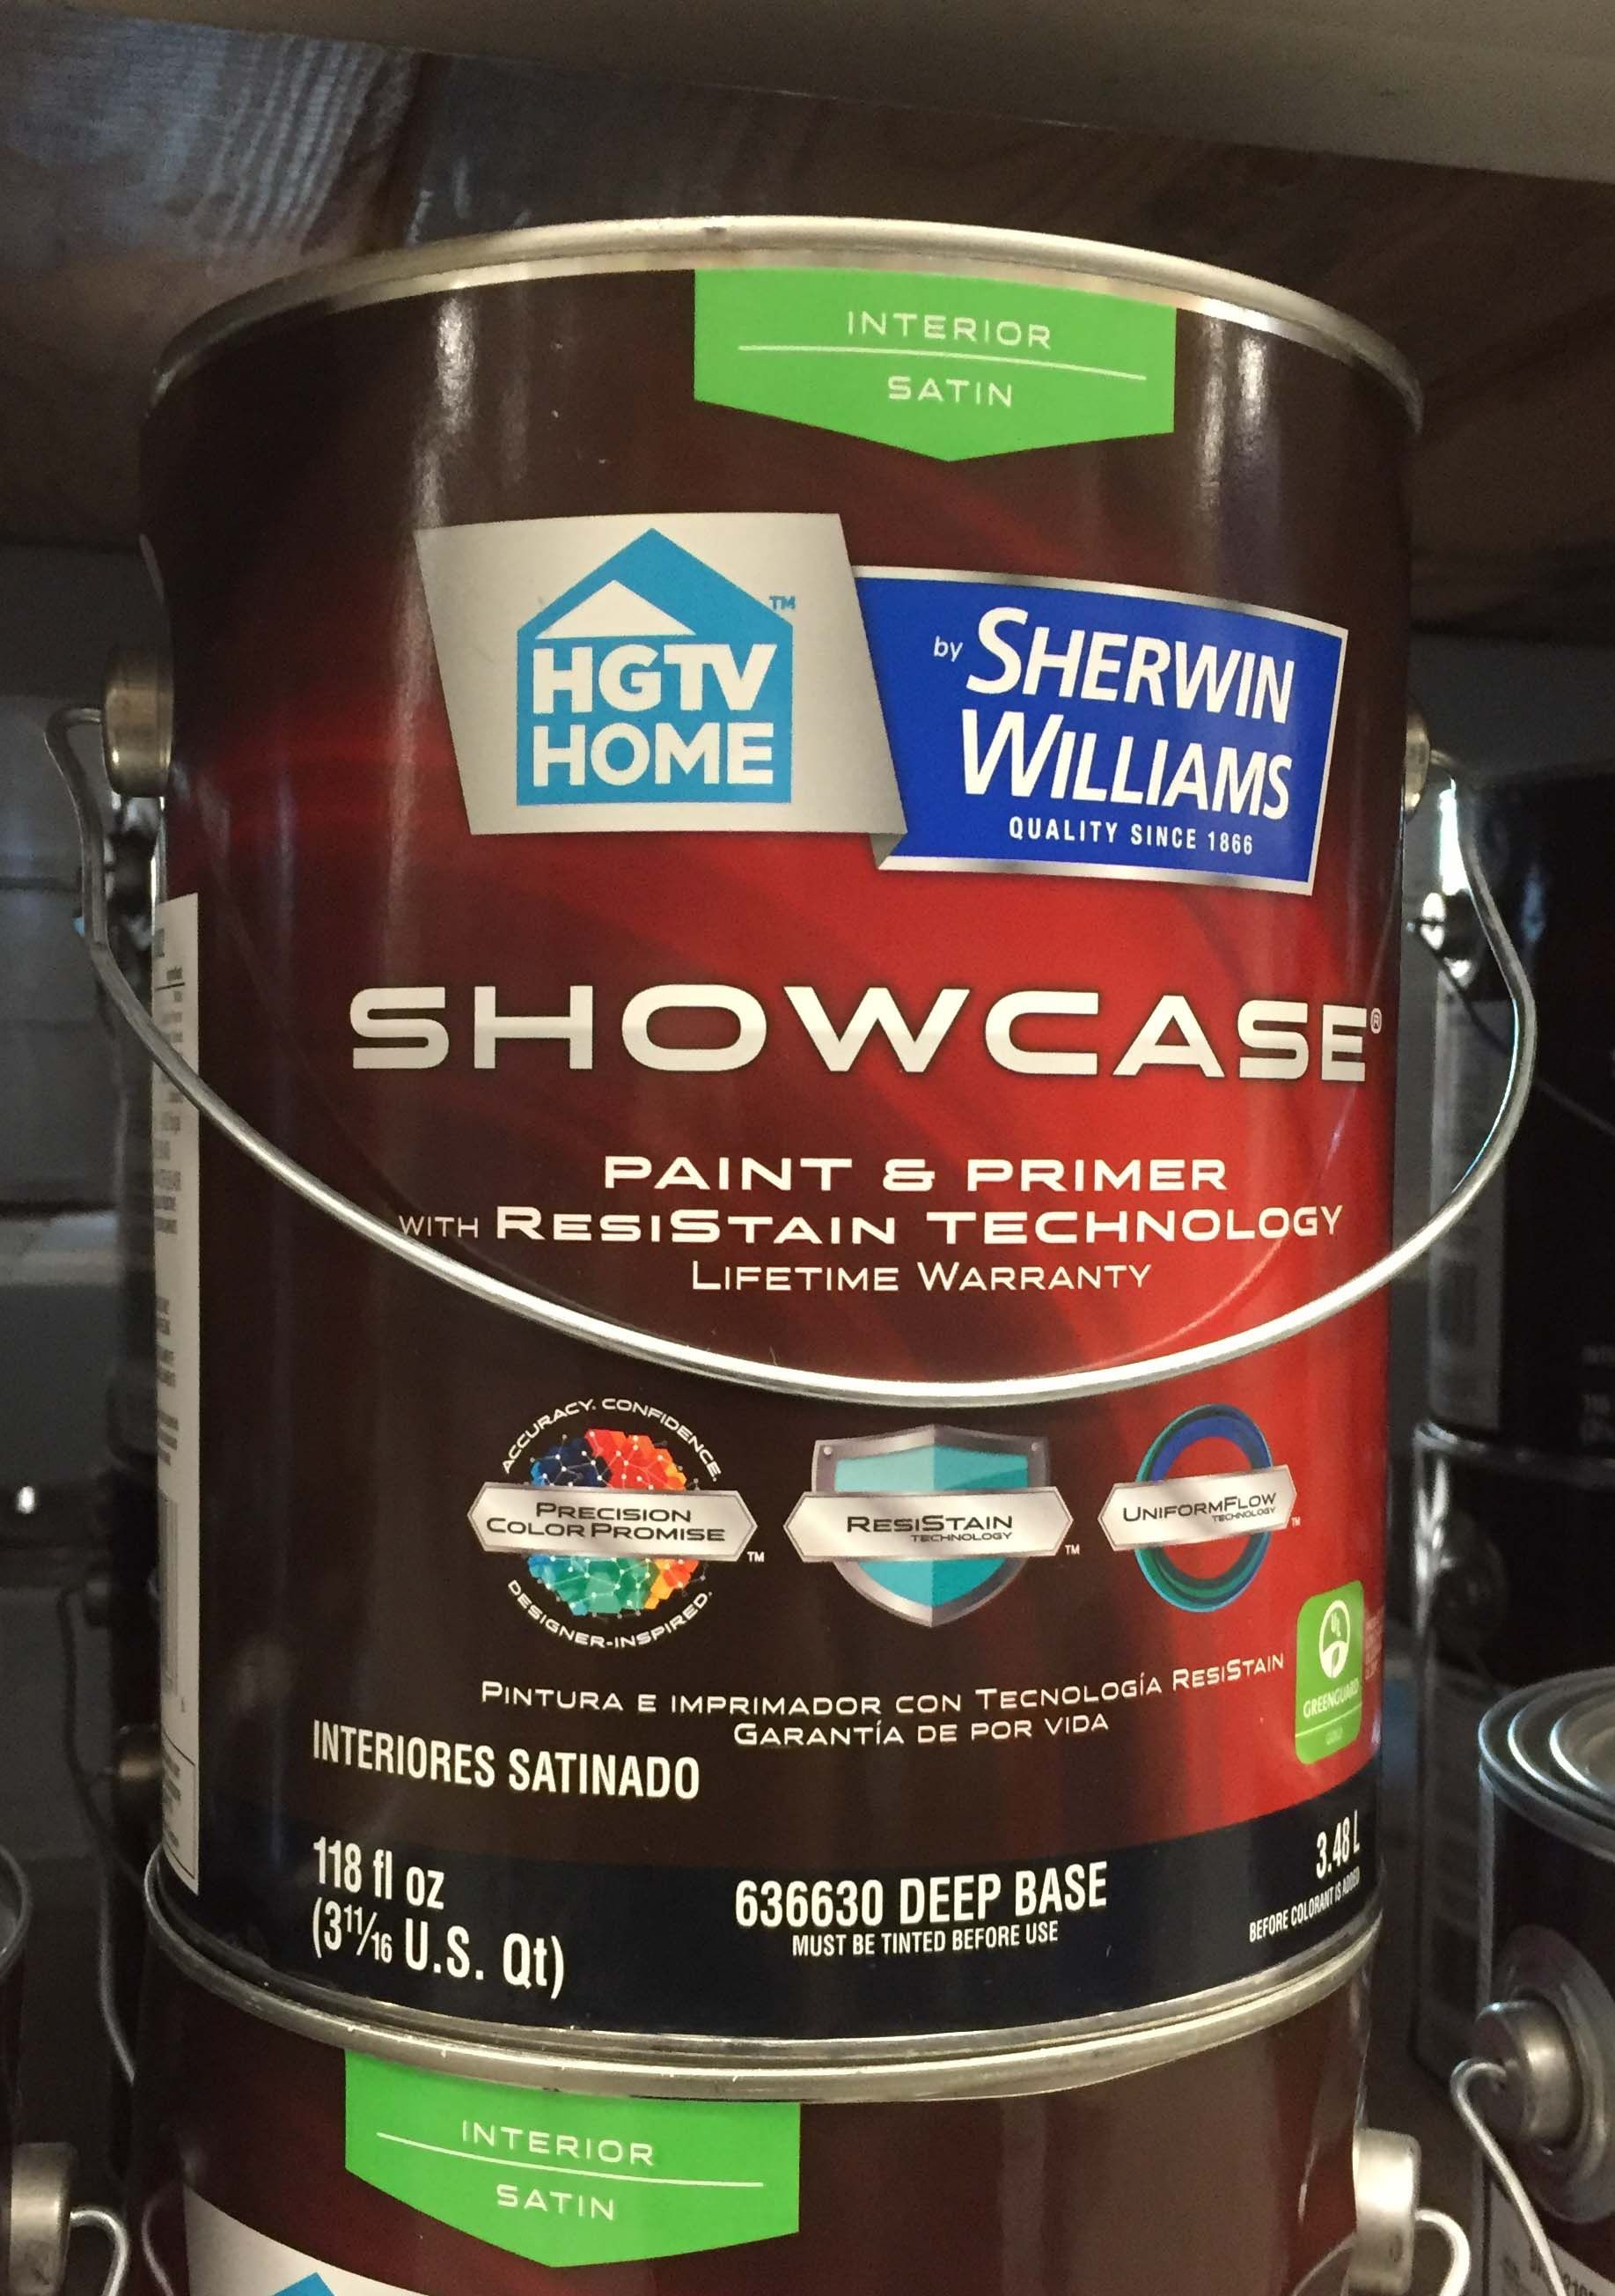 On Our Shopping Trip, We Asked A Loweu0027s Paint Specialist For His  Recommendation On A Kid Proof Wall Paint And This Is What He Showed Us.